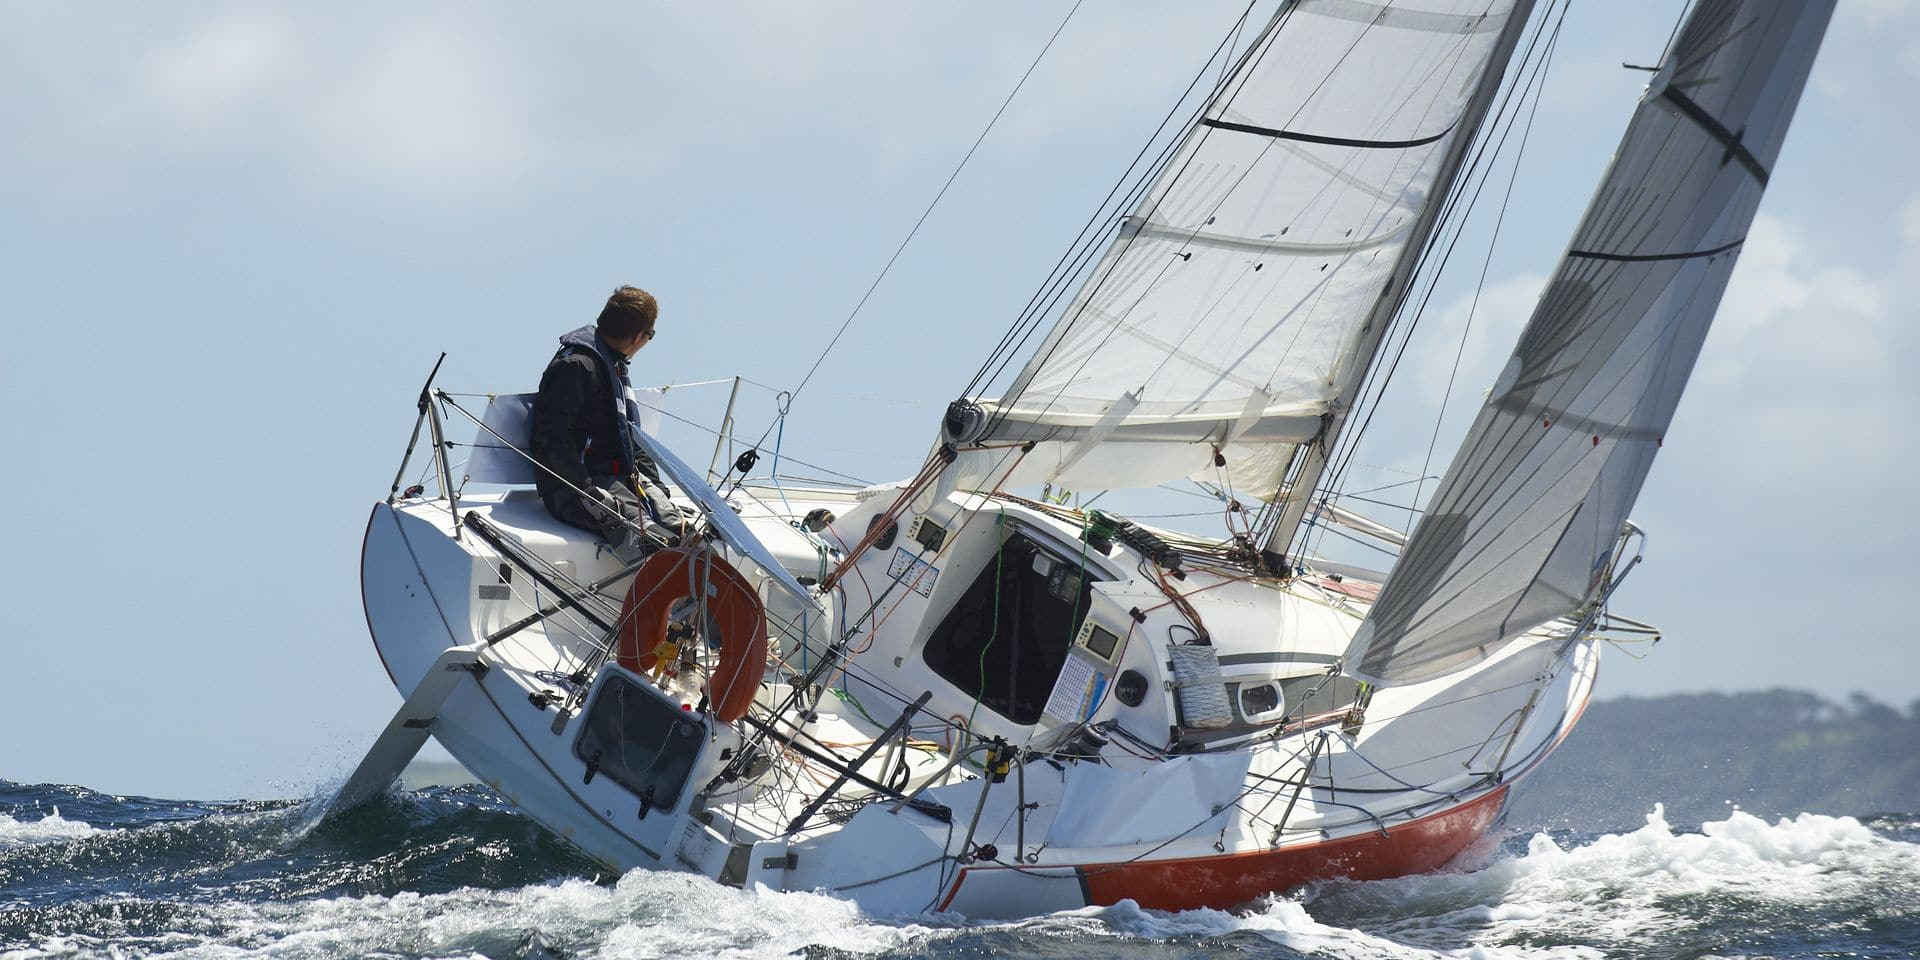 Yacht,And,Skipper,Sailing,At,Competition